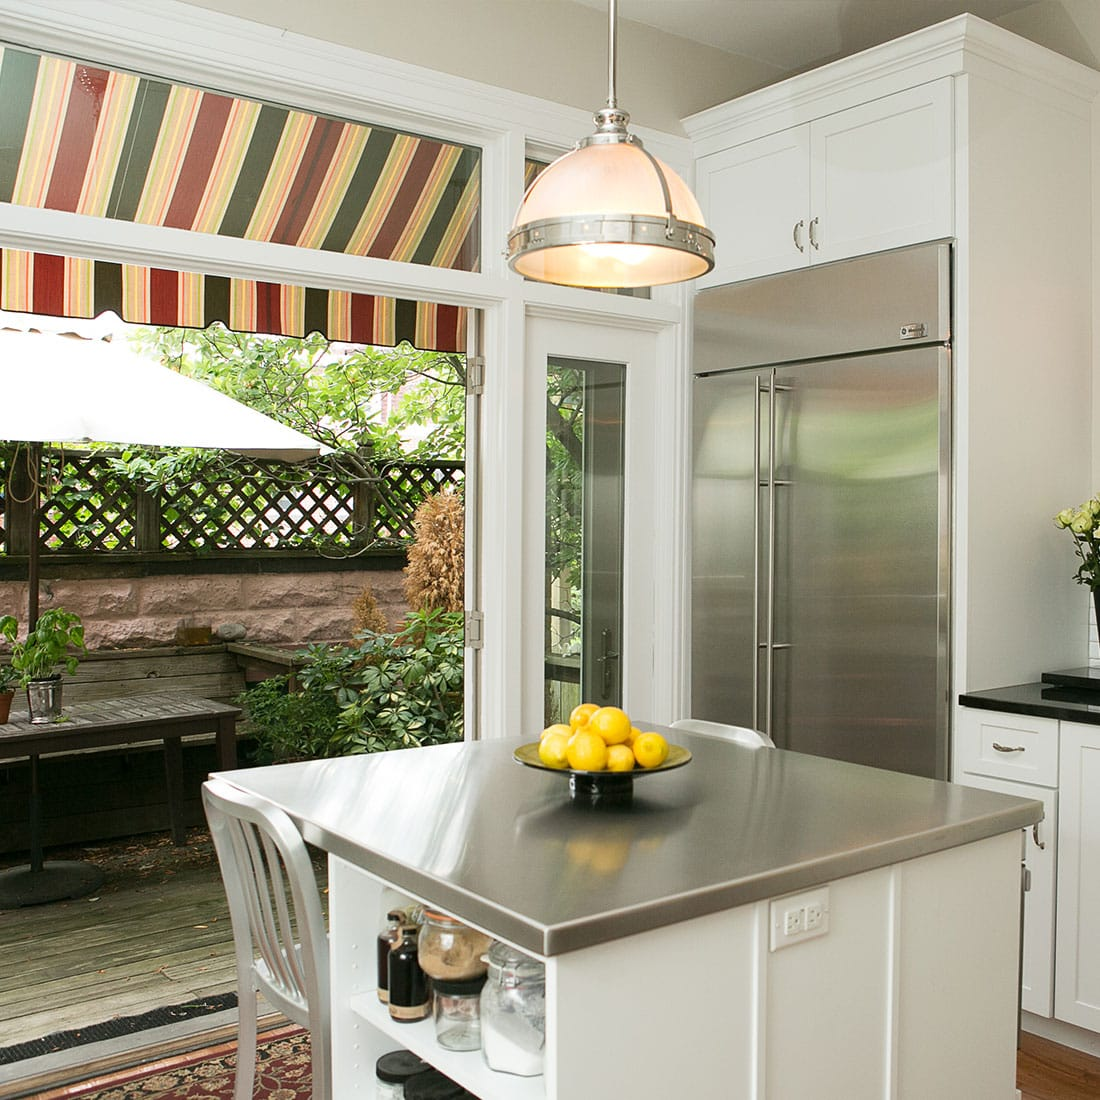 Large kitchen doors open to outdoor area in renovated kitchen